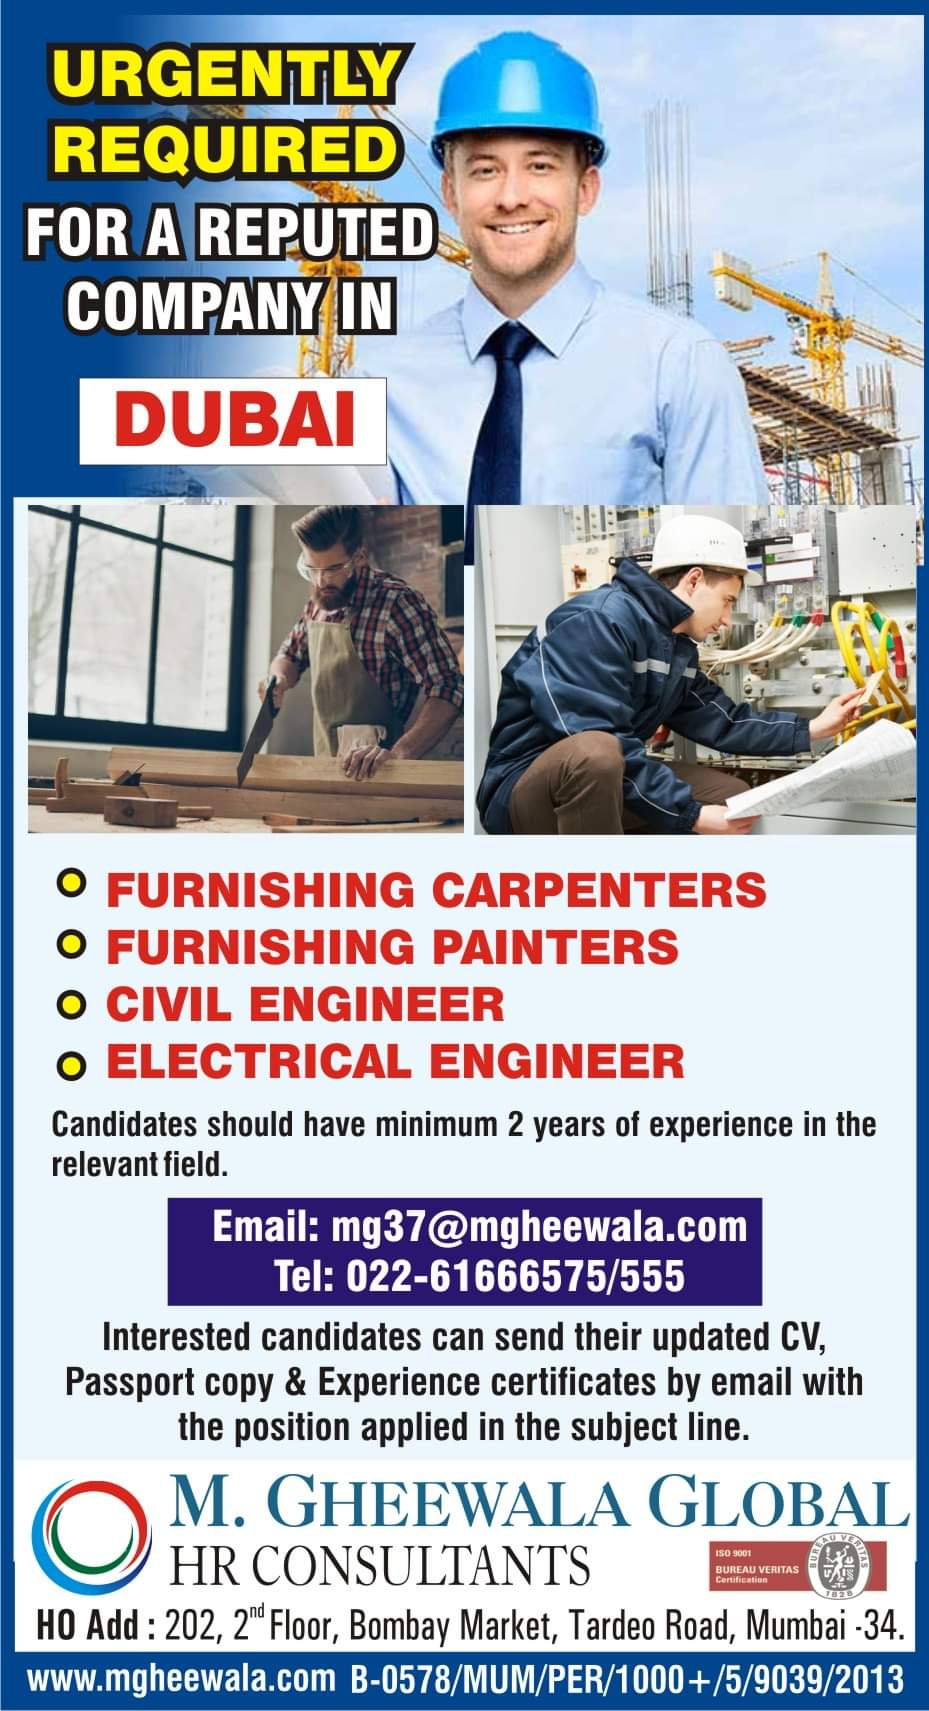 URGENTLY REQUIRED FOR A COMPANY IN  DUBAI